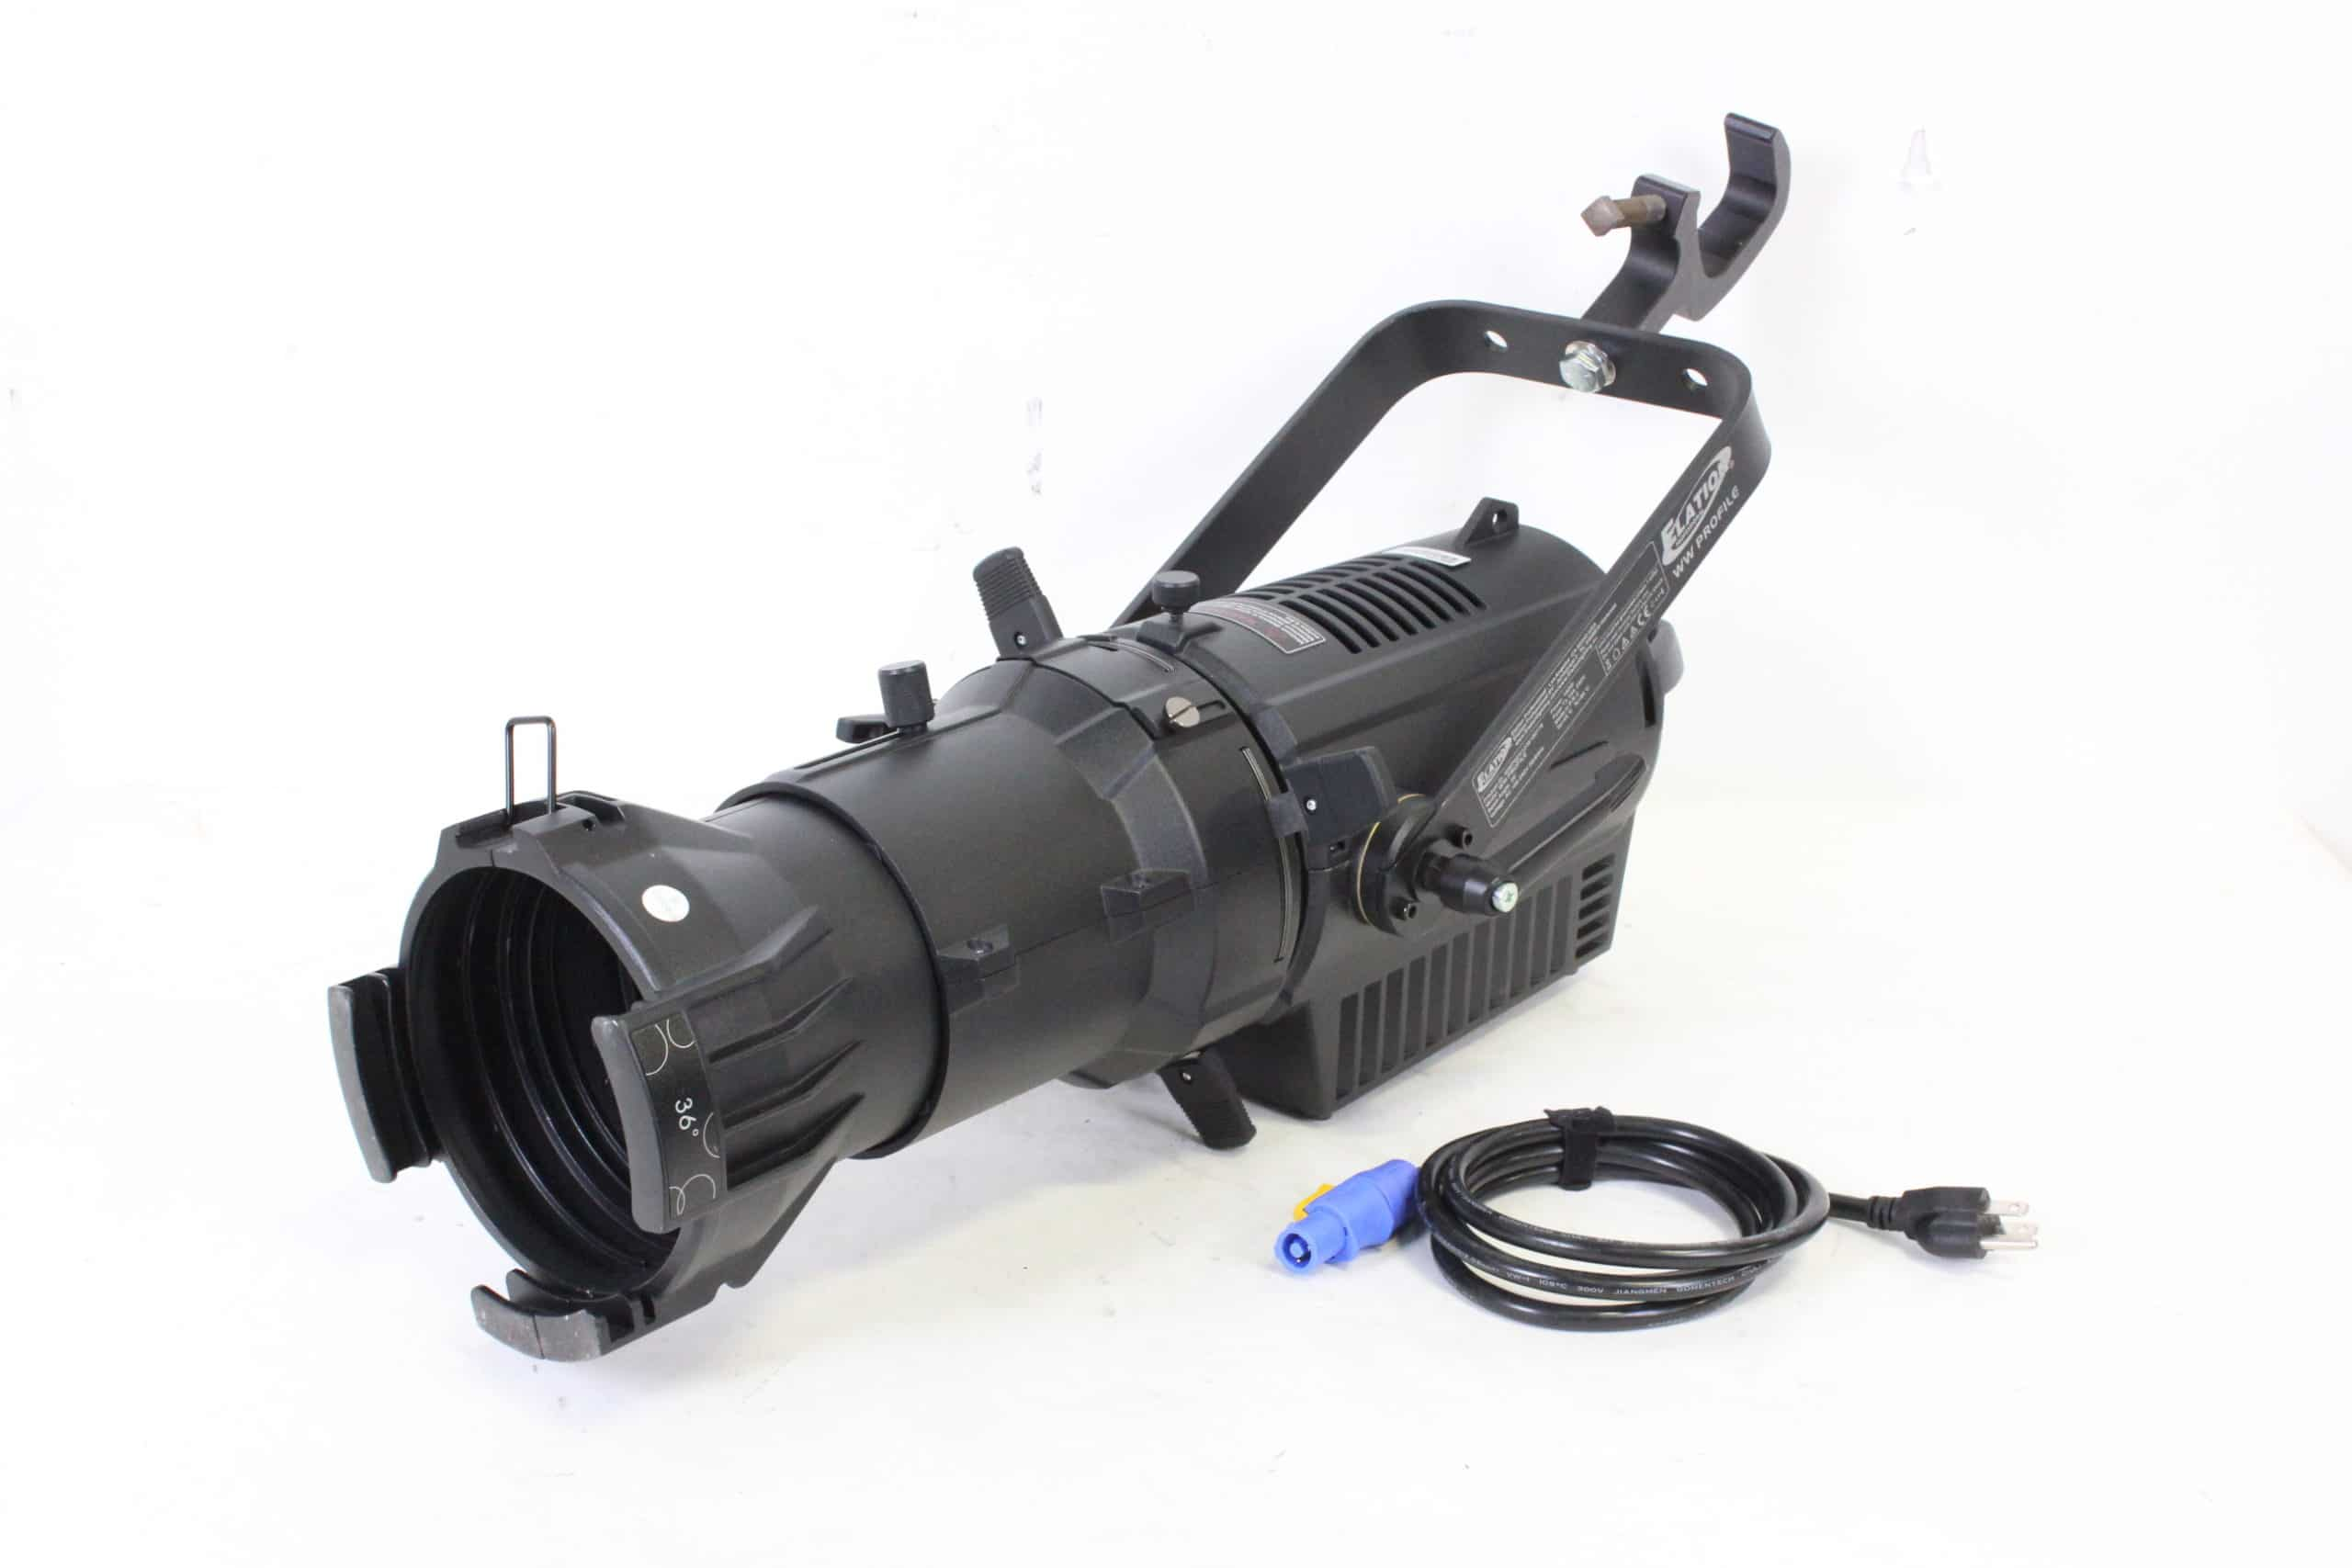 elation-ww-profile-led-ellipsoidal-w-36°-lens-no-lens-adjust-knob MAIN